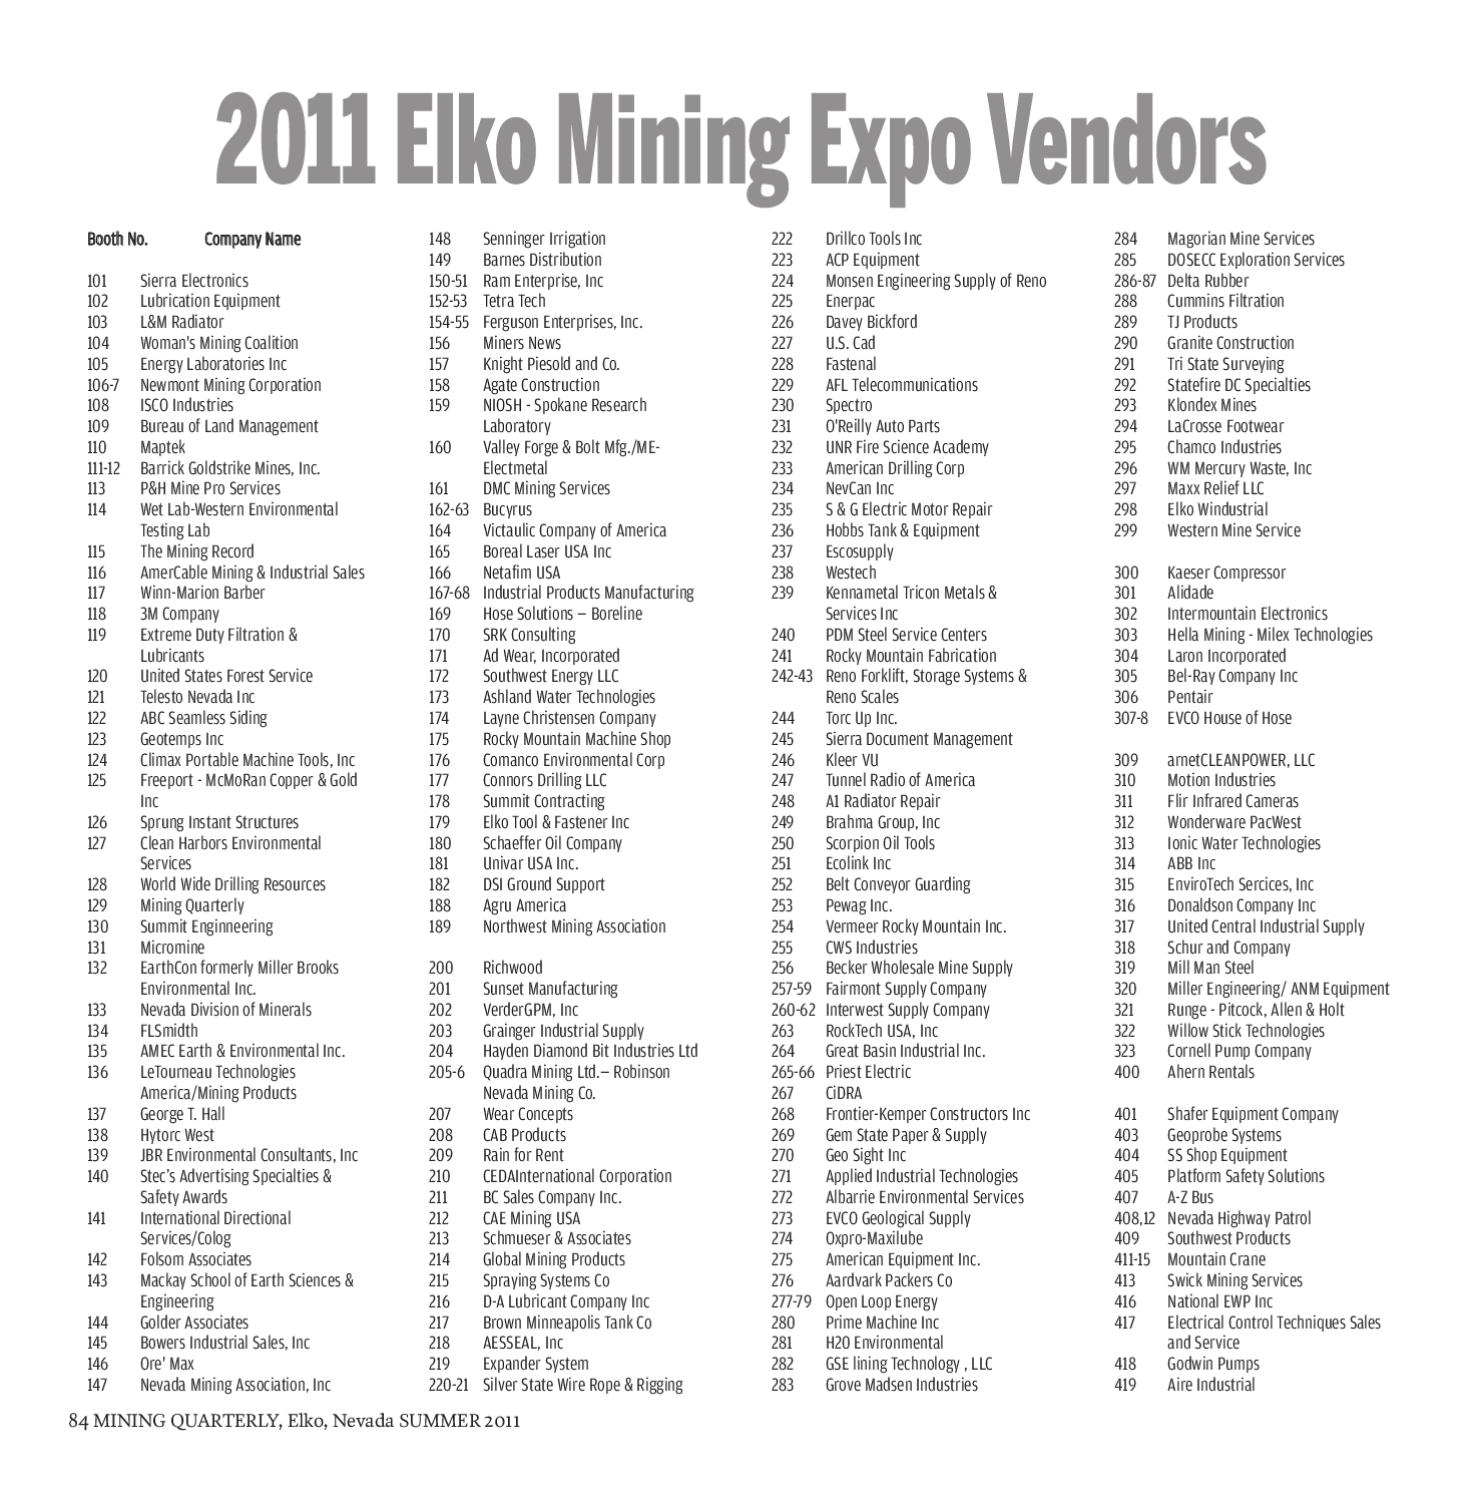 Mining Quarterly Summer 2011 By The Elko Daily Free Press